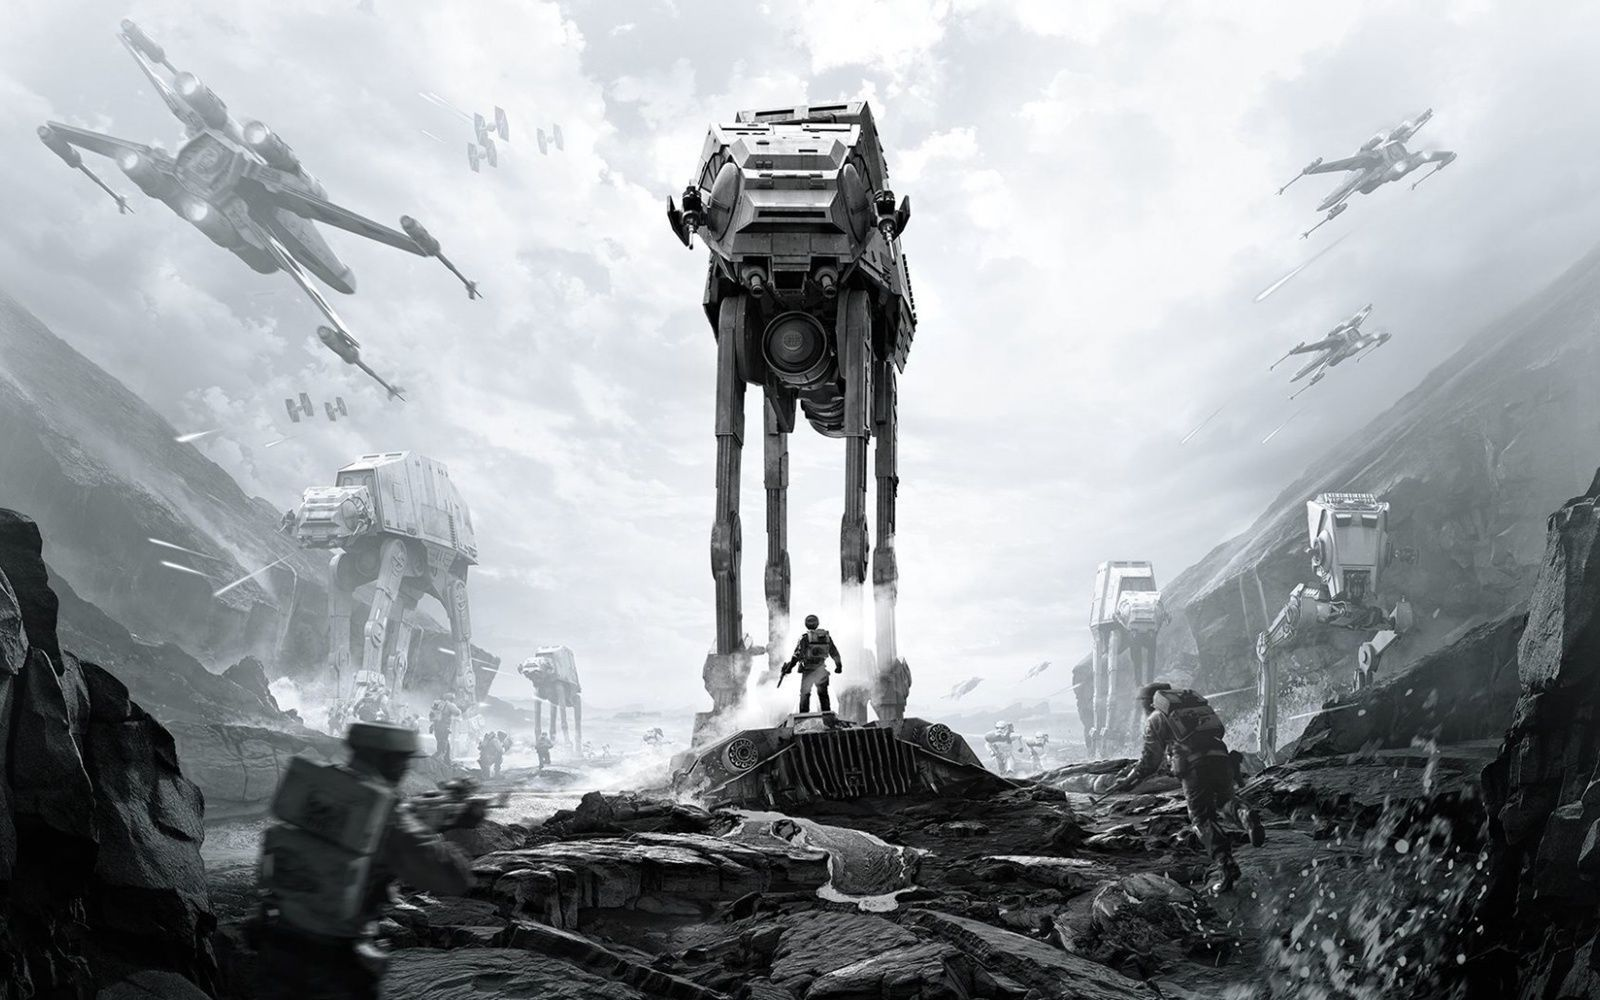 Bring The Art Of Home With Star Wars Canvas Painting 2018 Star Wars Wallpaper Star Wars Canvas Painting Star Wars Battlefront